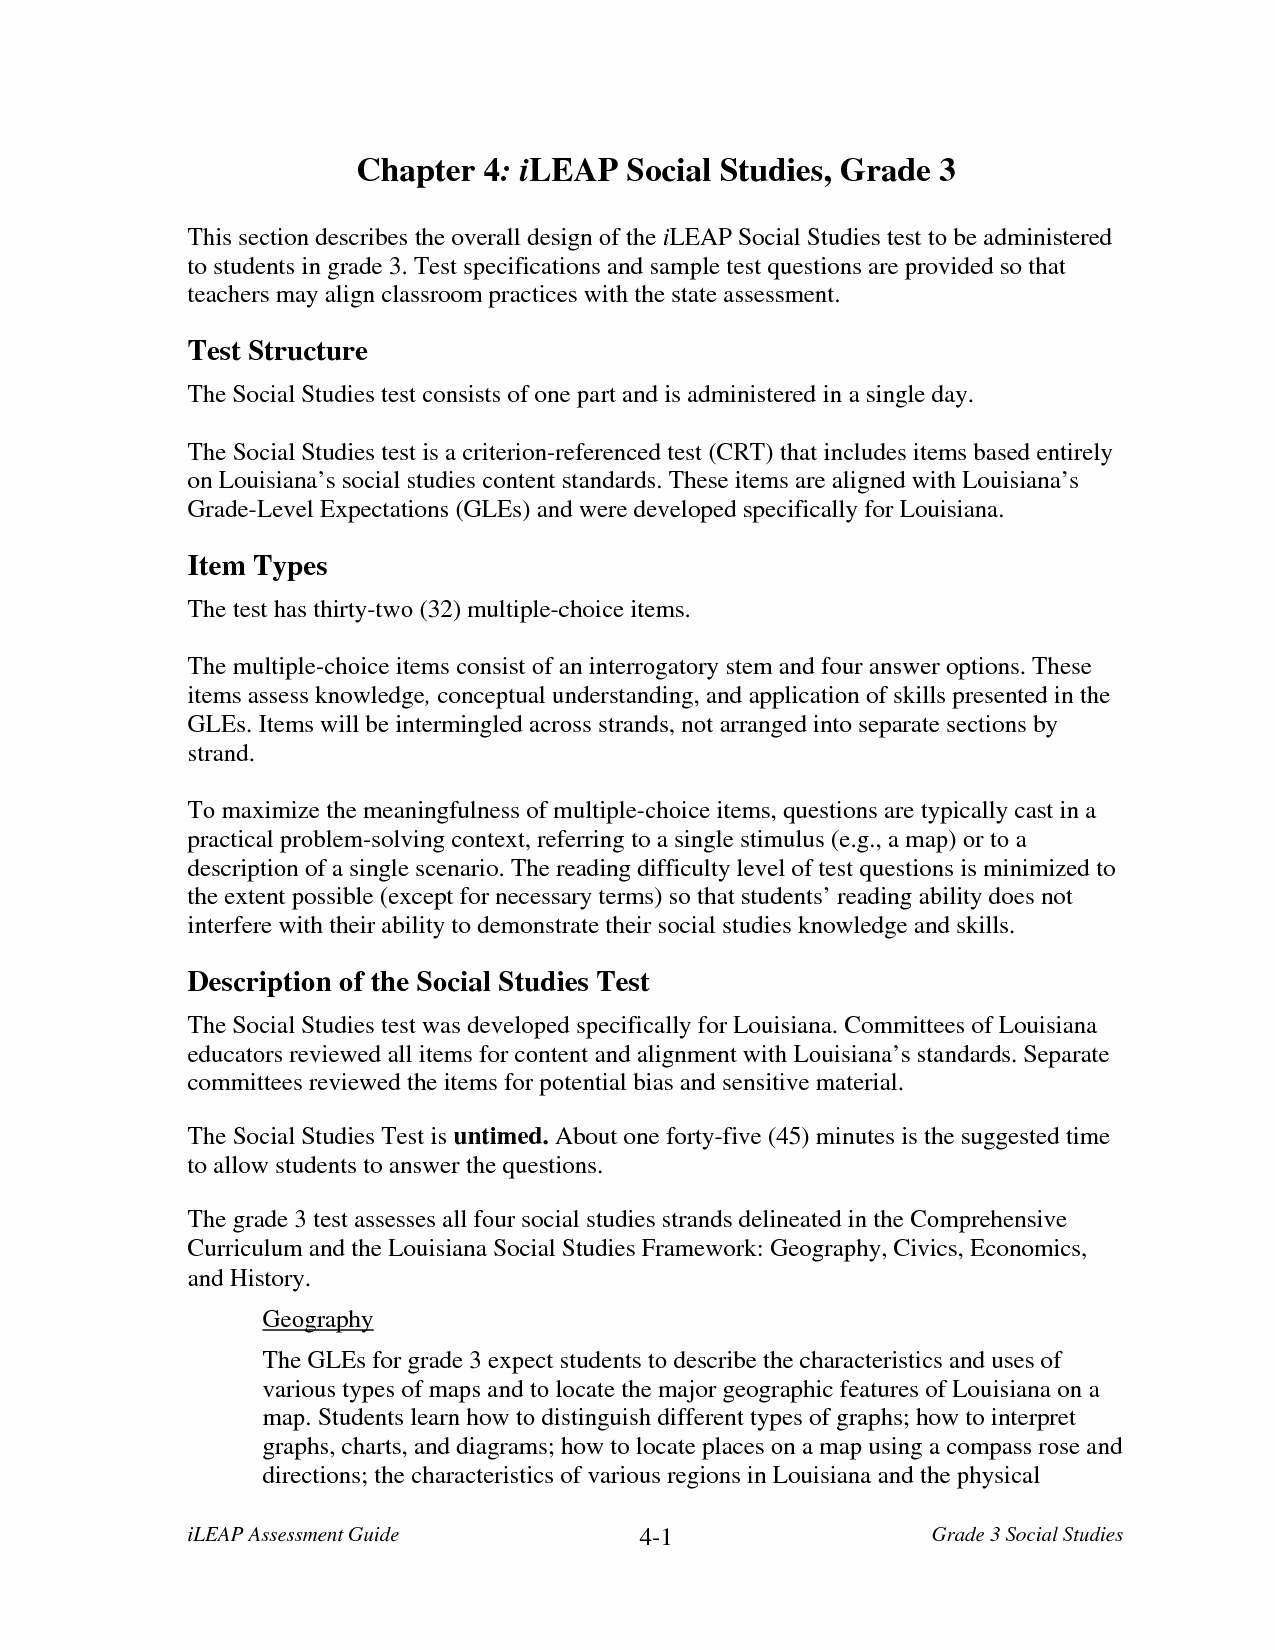 Second Grade social Studies Worksheet Lovely 3rd Grade Worksheet Category Page 1 Worksheeto